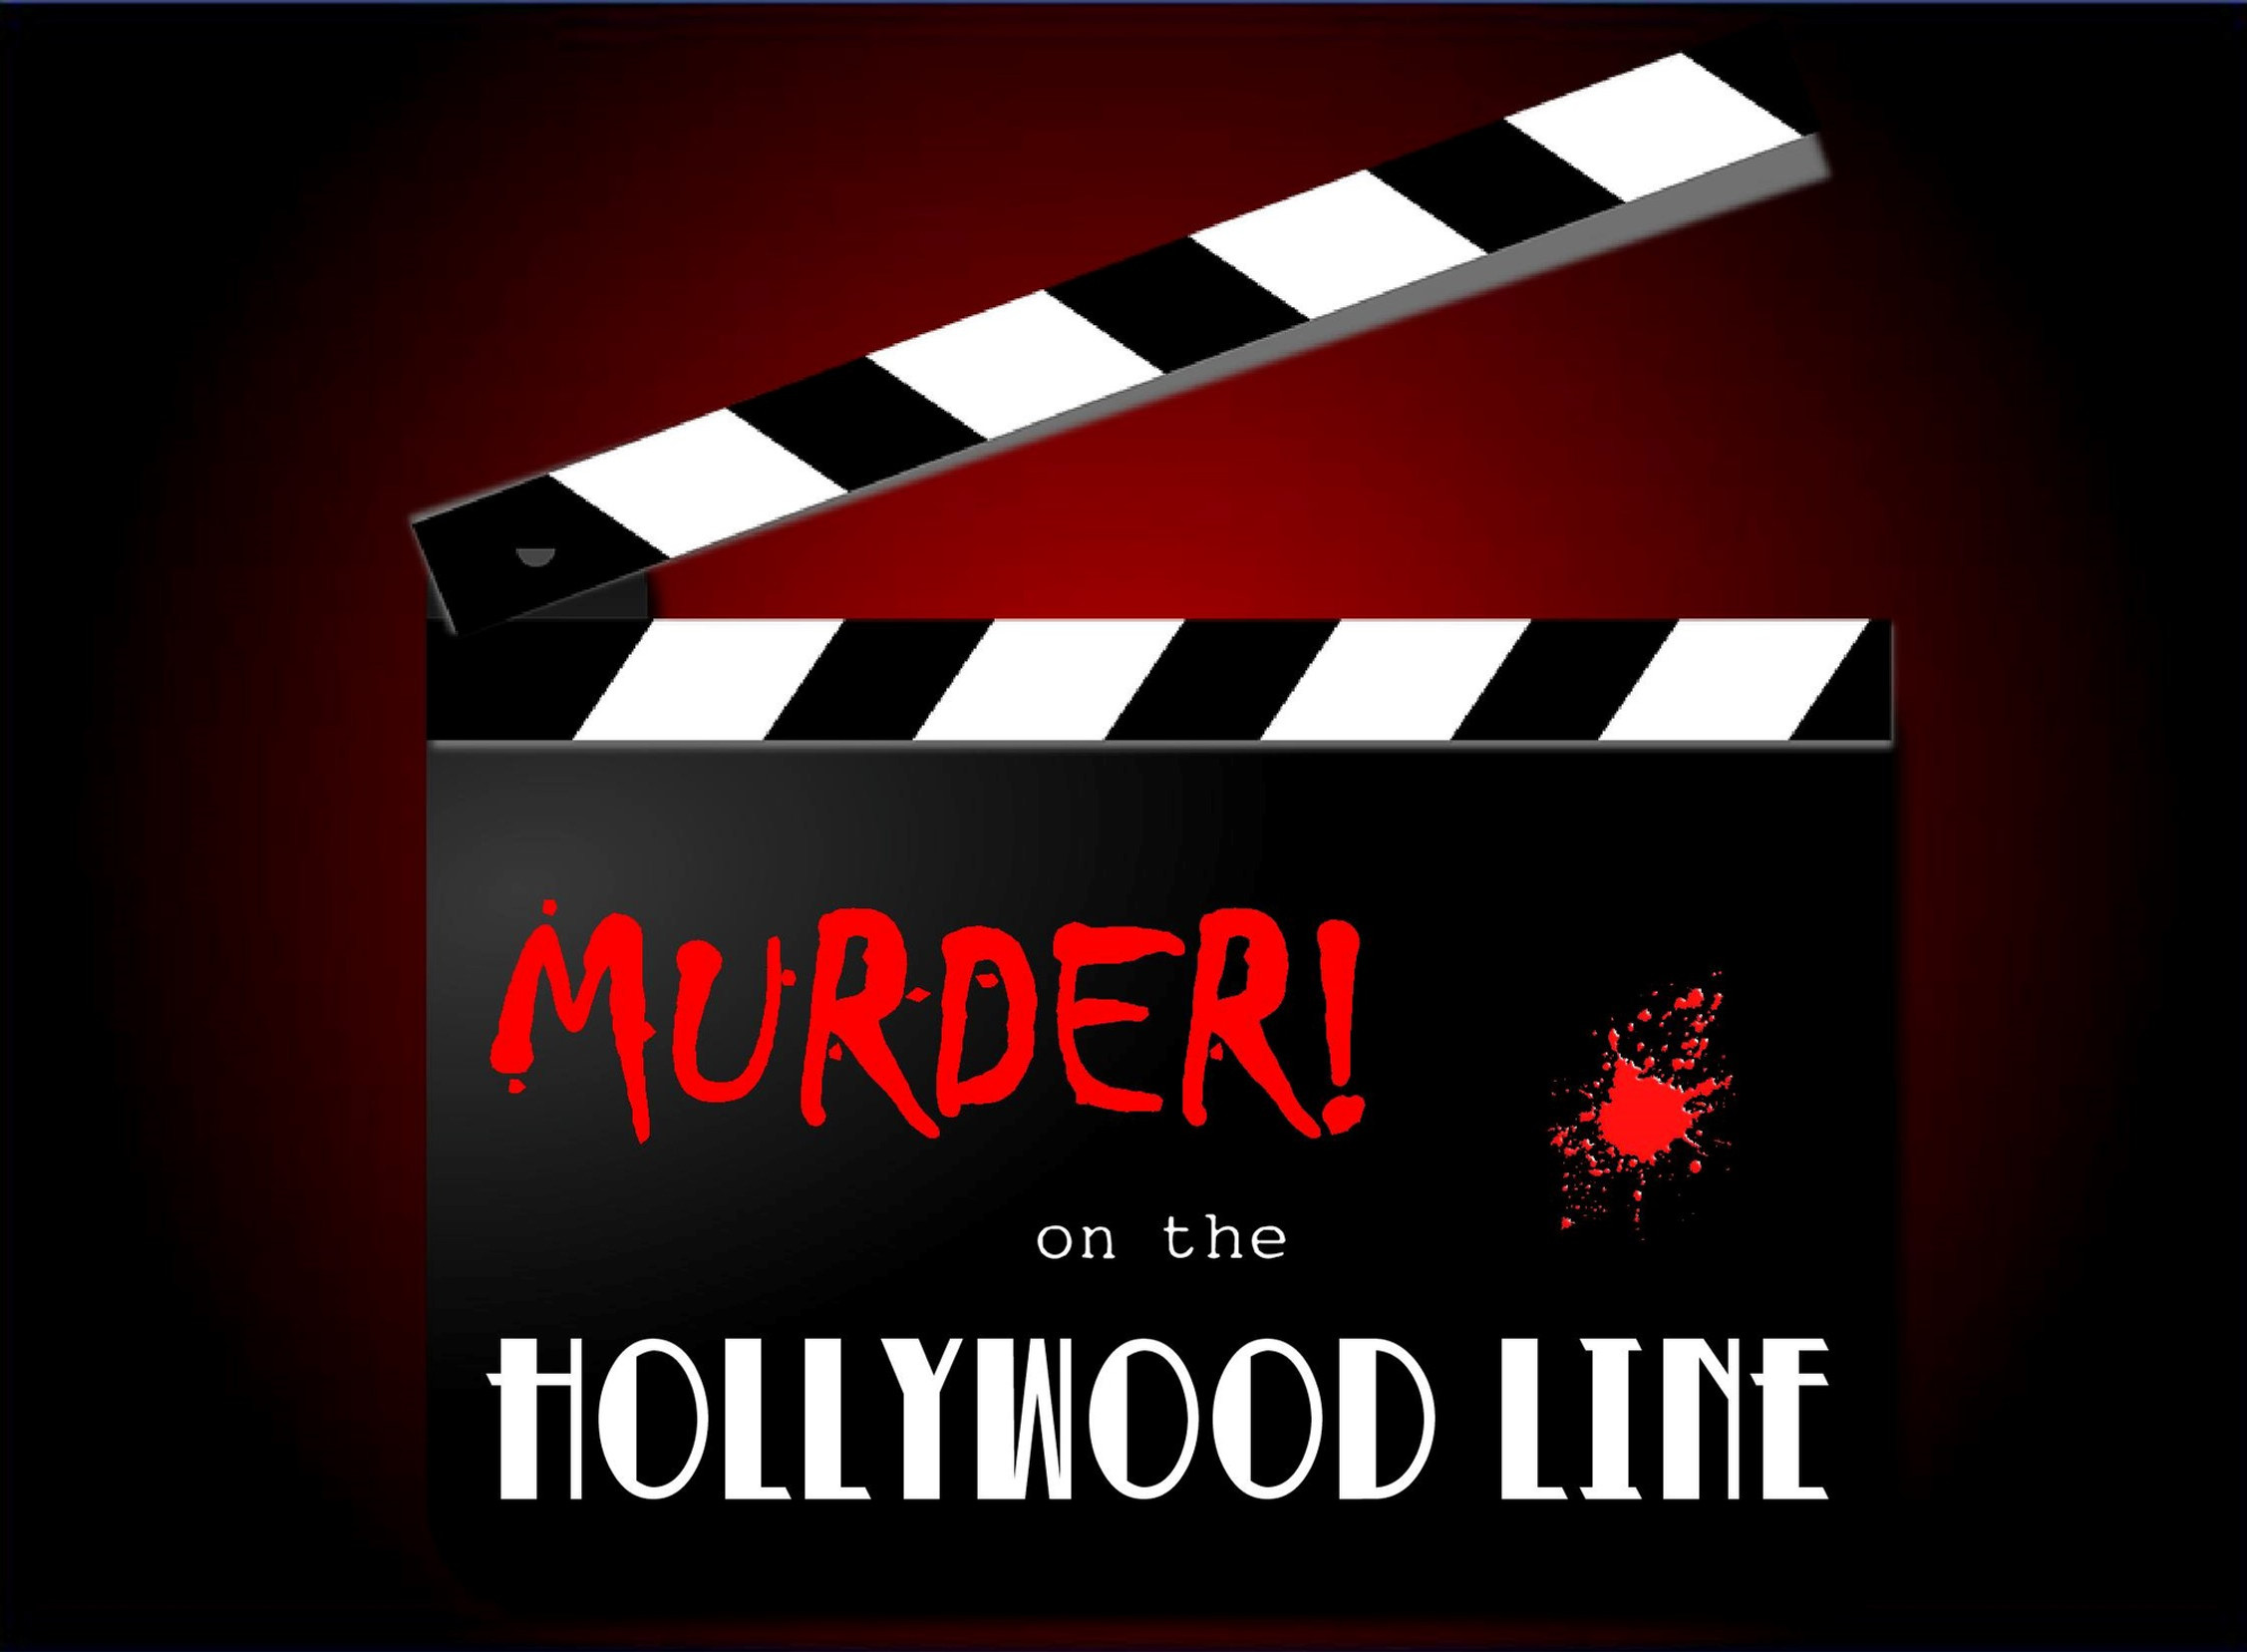 Murder on the Hollywood Line